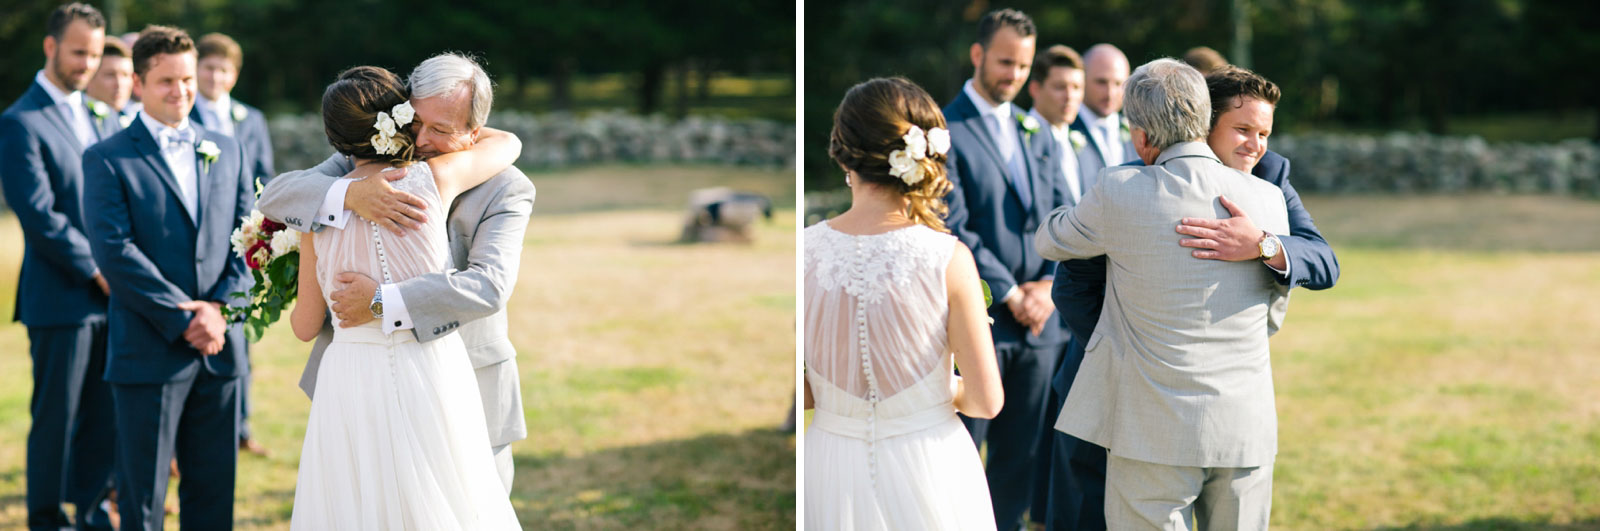 Father of the bride giving away his daughter, and embracing bride and groom, summer wedding on cape